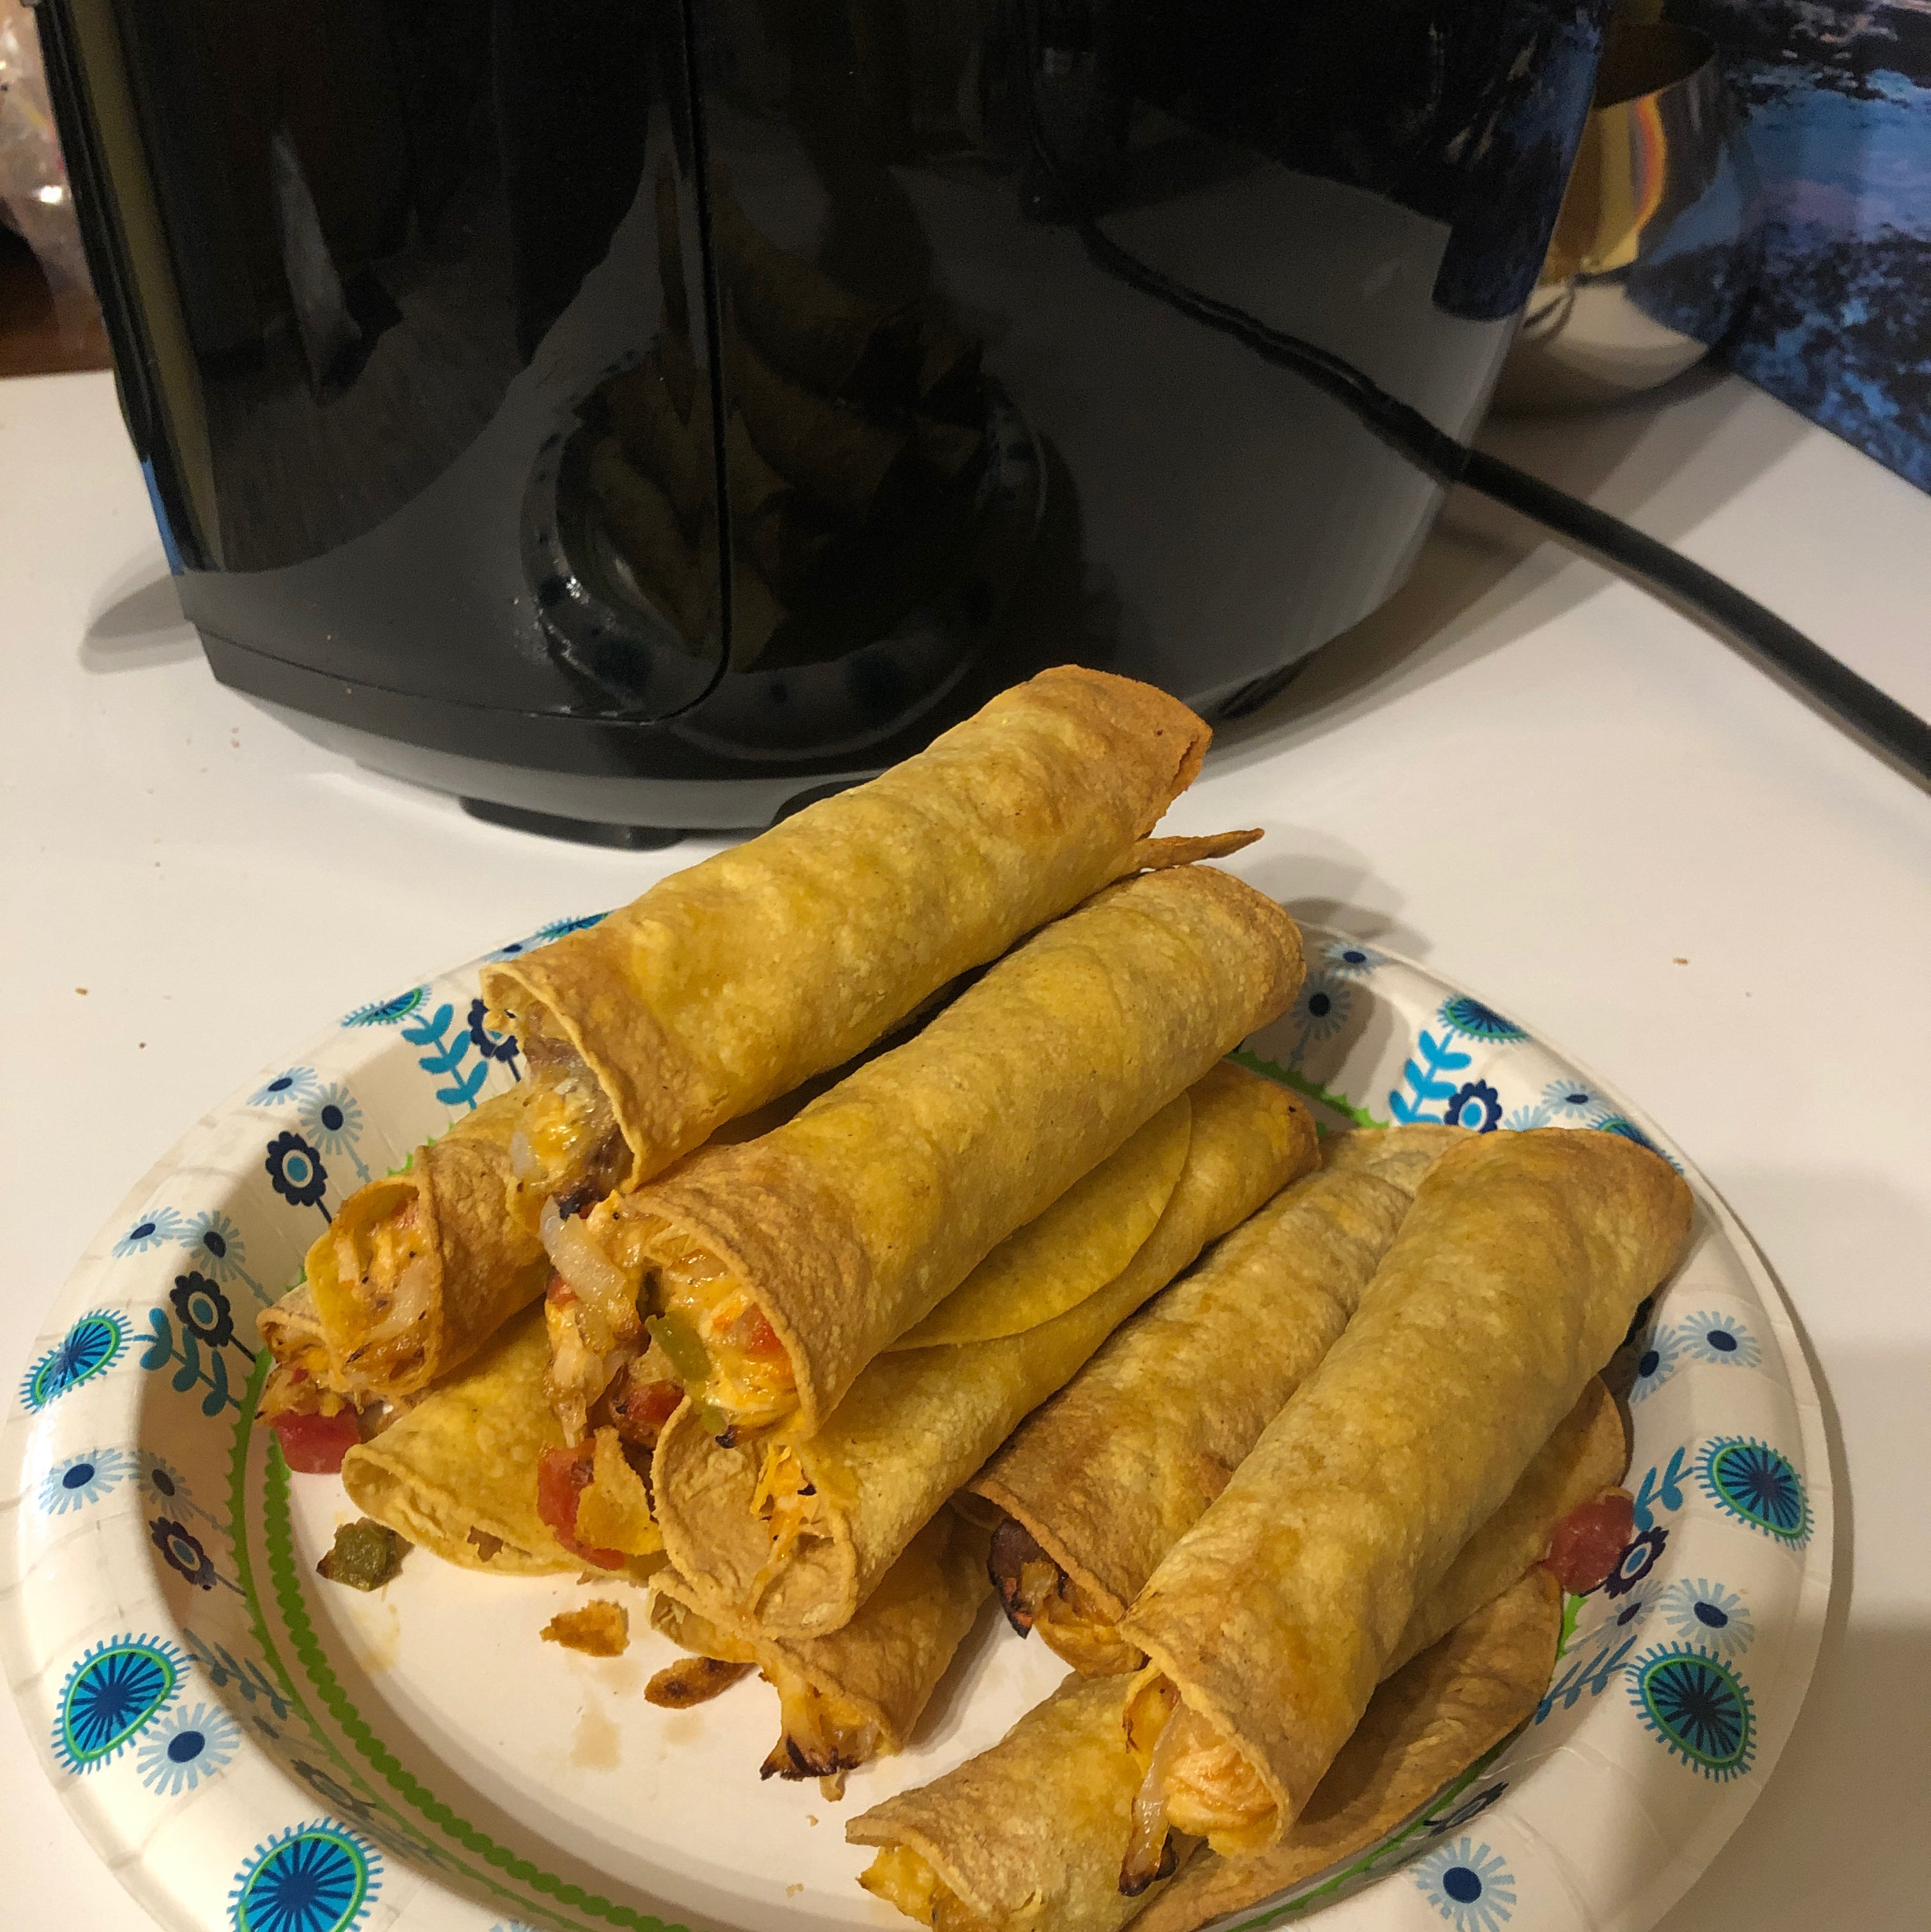 "Shredded rotisserie chicken will makes quick work of the prep, but you can always use home-cooked chicken. ""These taquitos are healthier than deep fried ones,"" says Yoly. ""Serve with sides of sour cream, Mexican tomato sauce, and guacamole, or your choice of sides."""